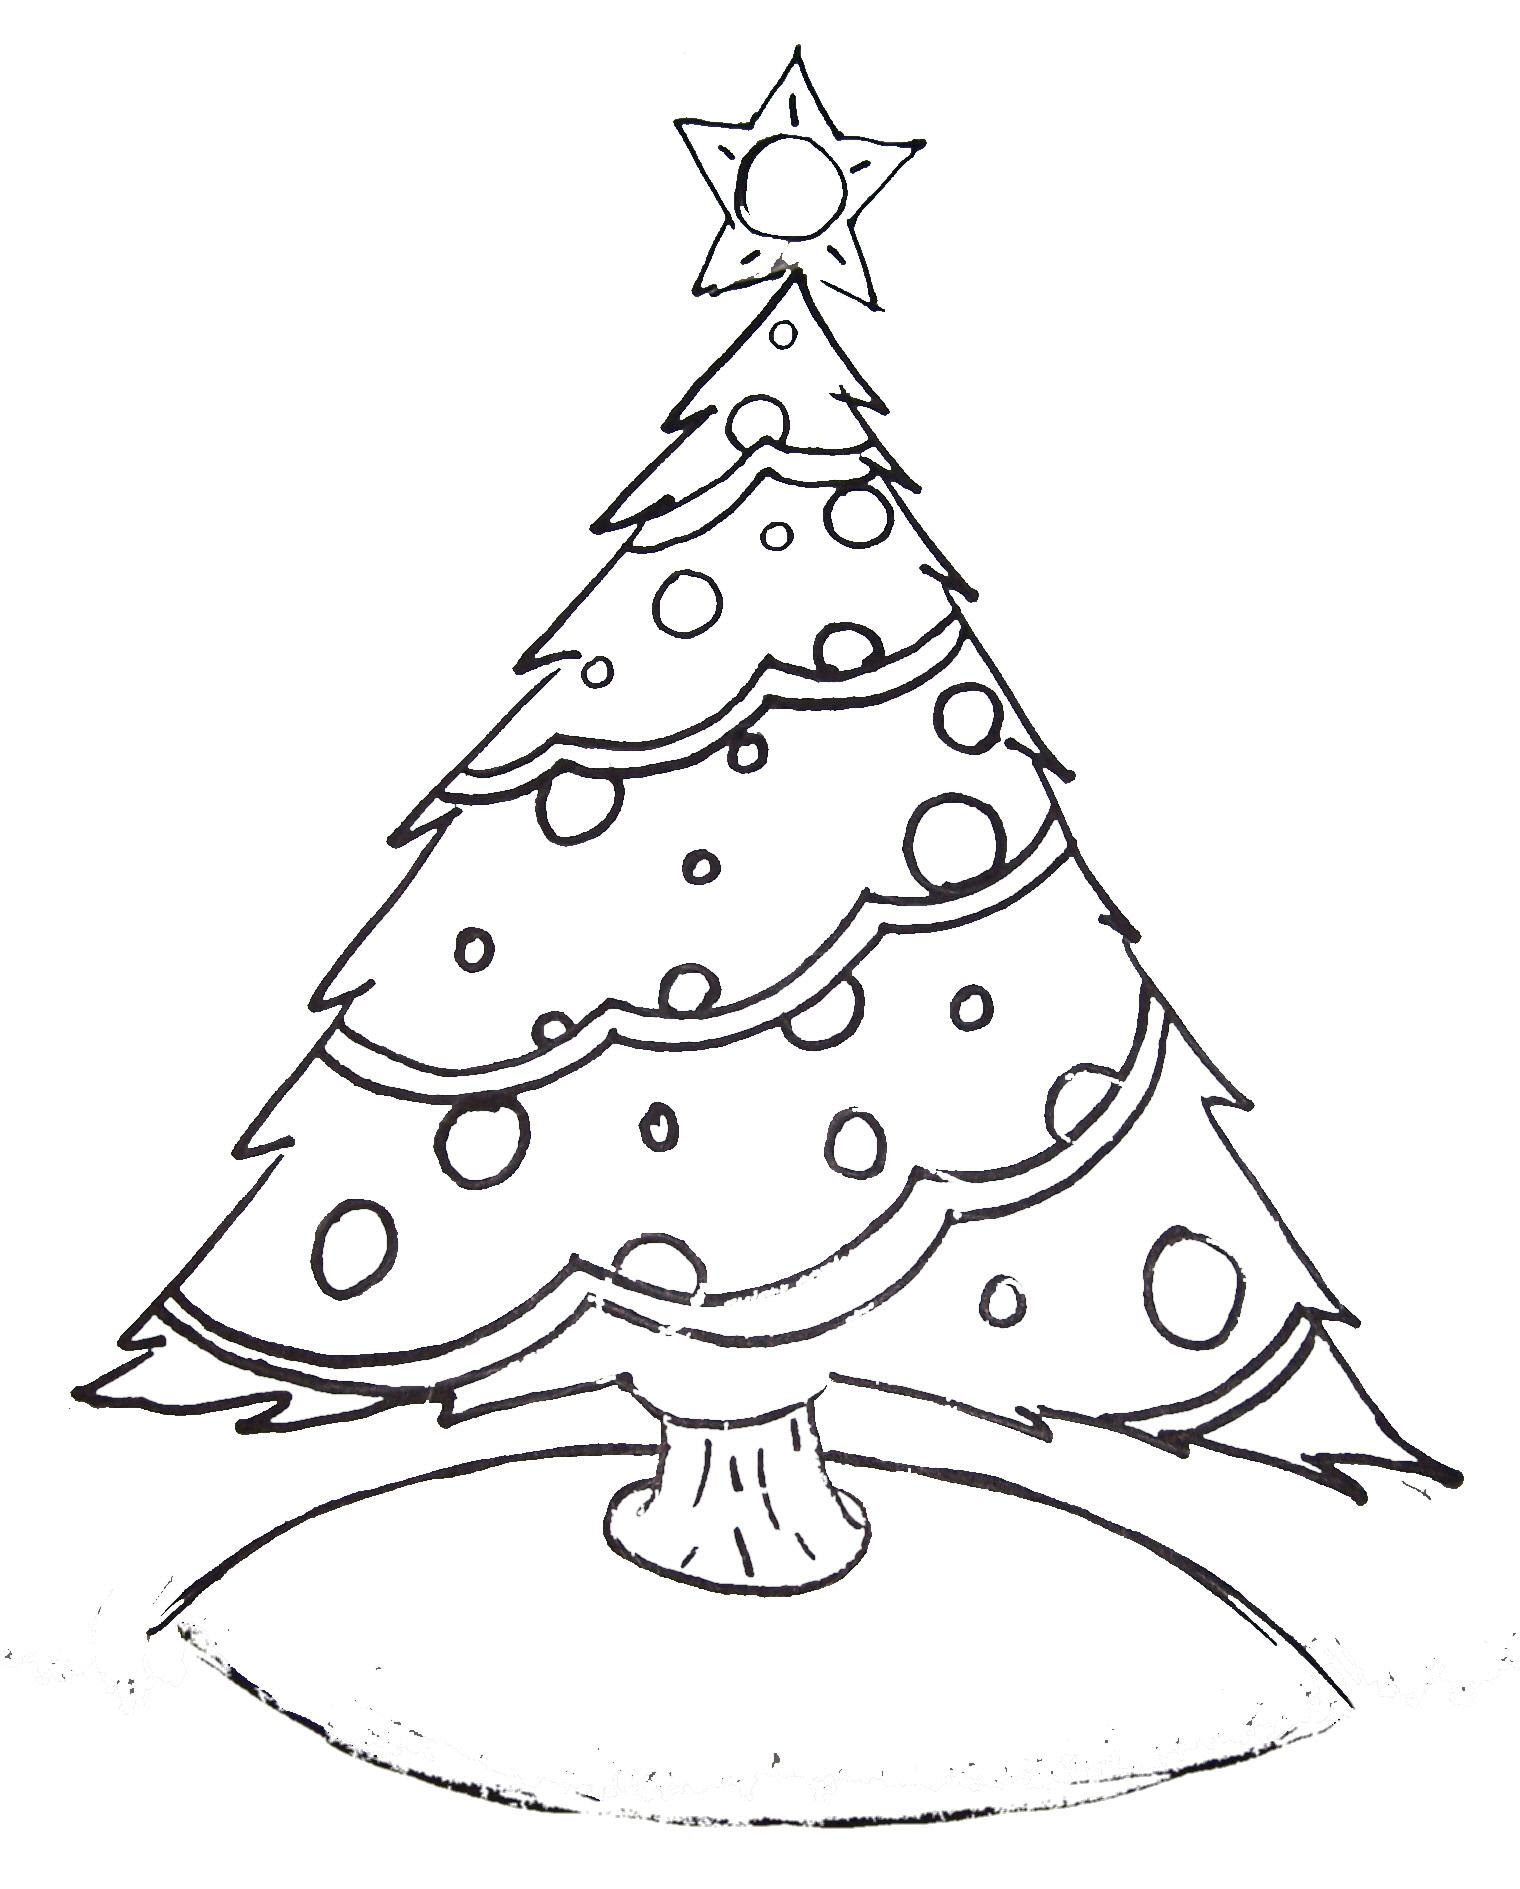 Free Printable Christmas Tree and Santa Coloring Pages ...